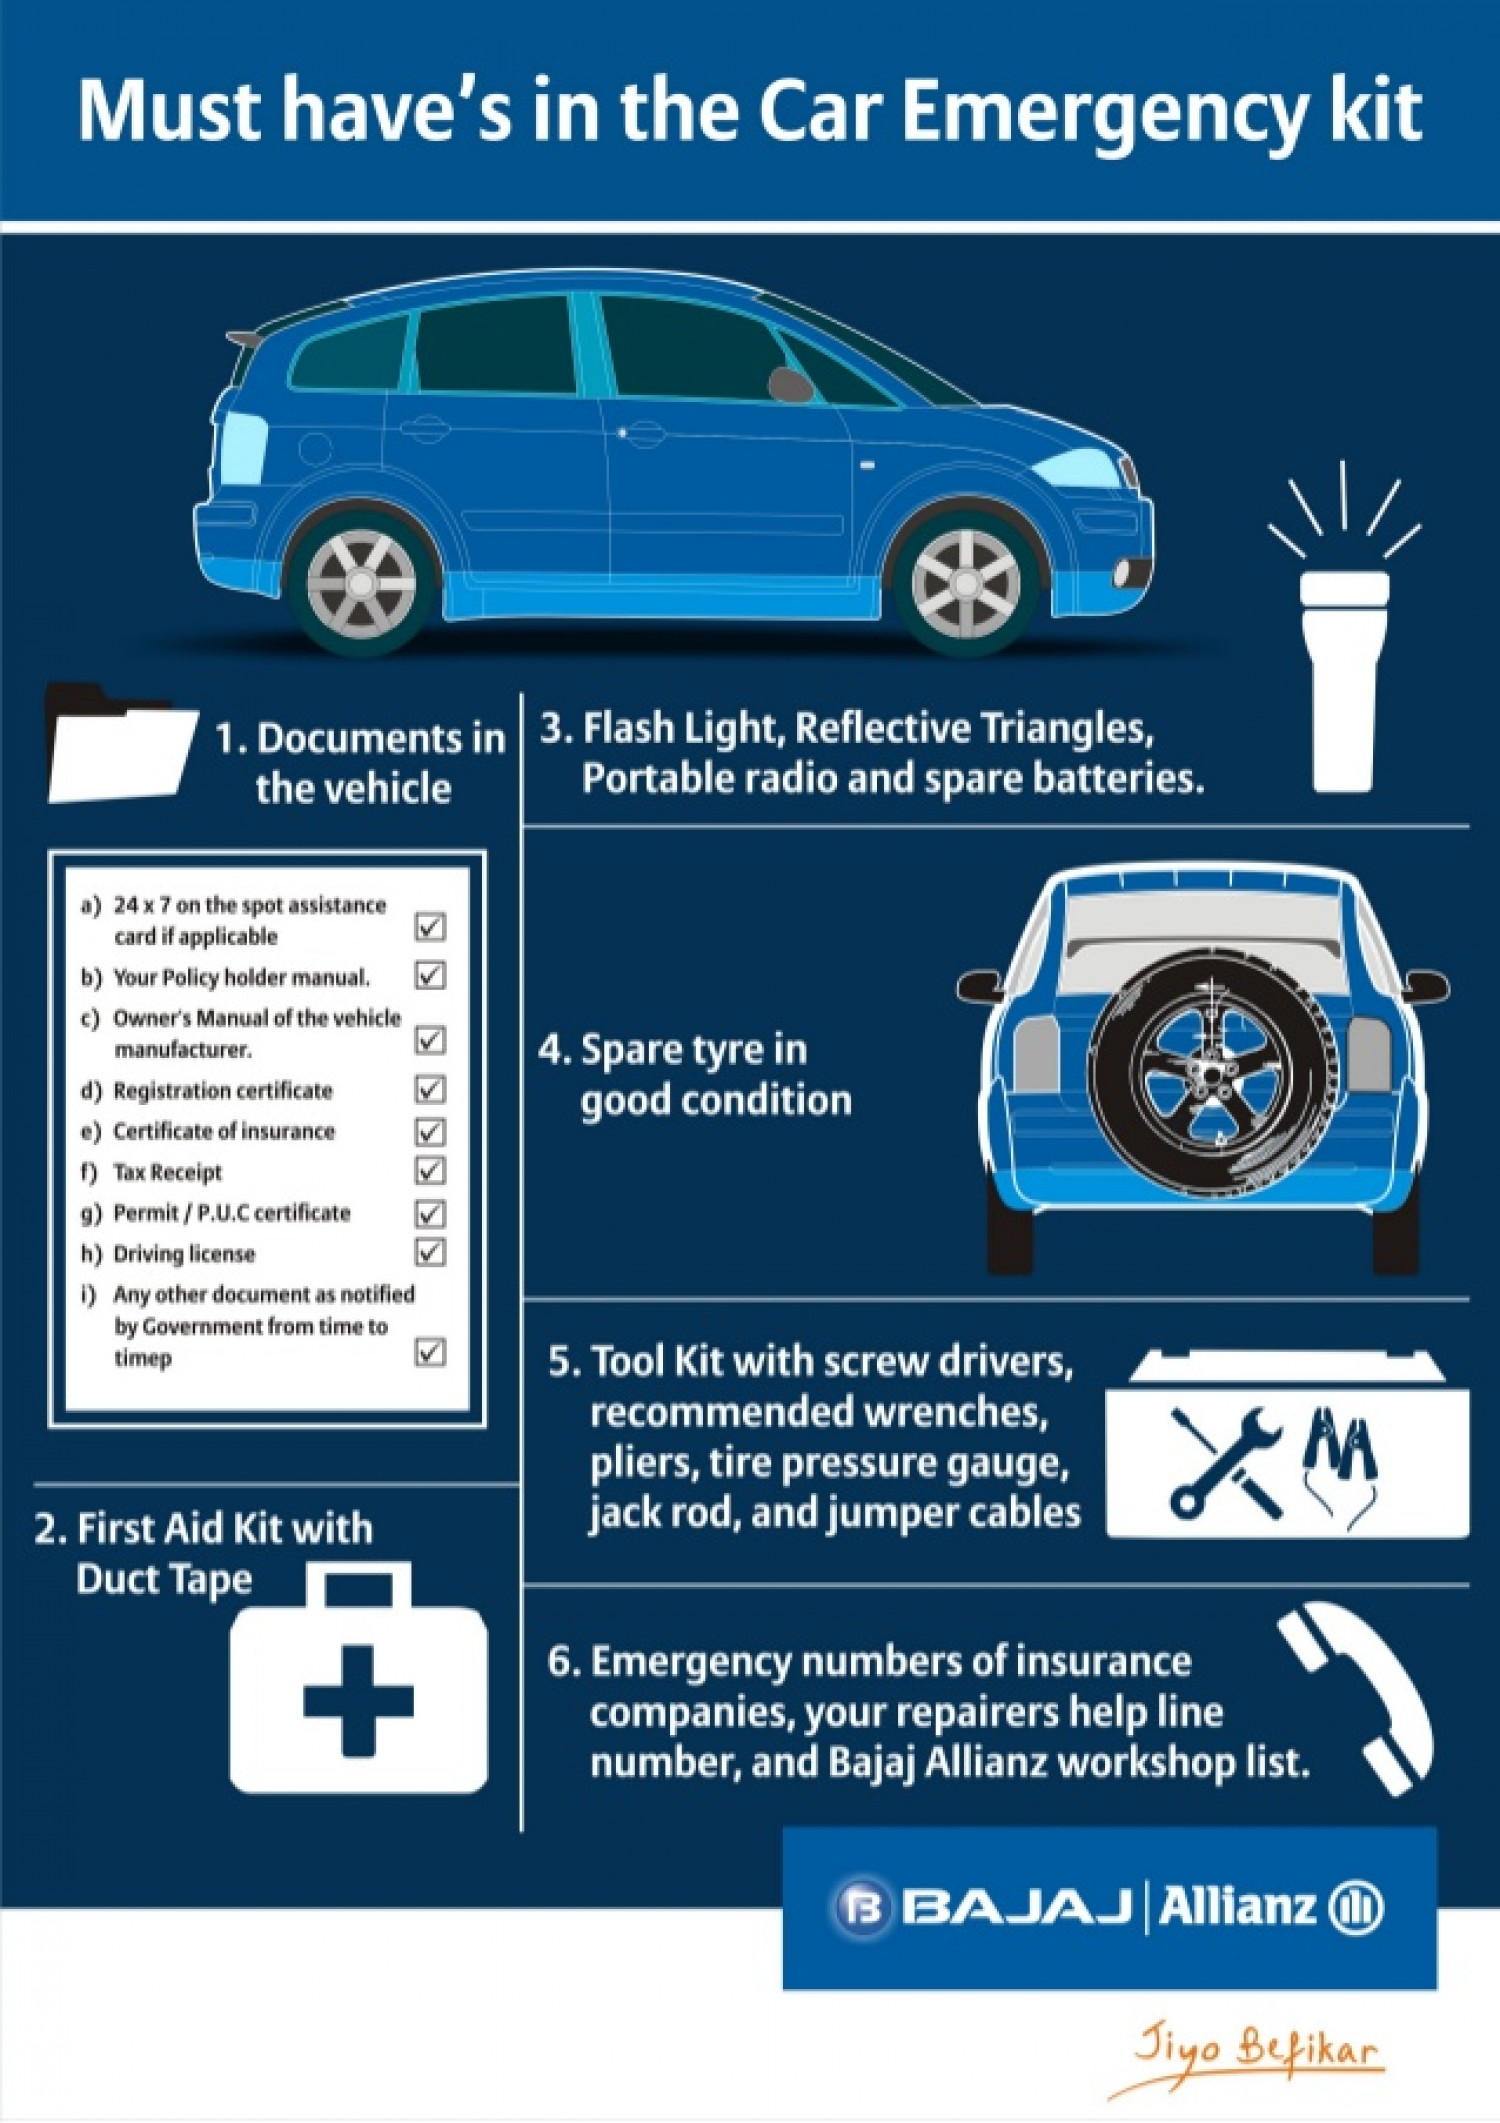 Must Haves in Your Car Emergency Kit | Visual.ly